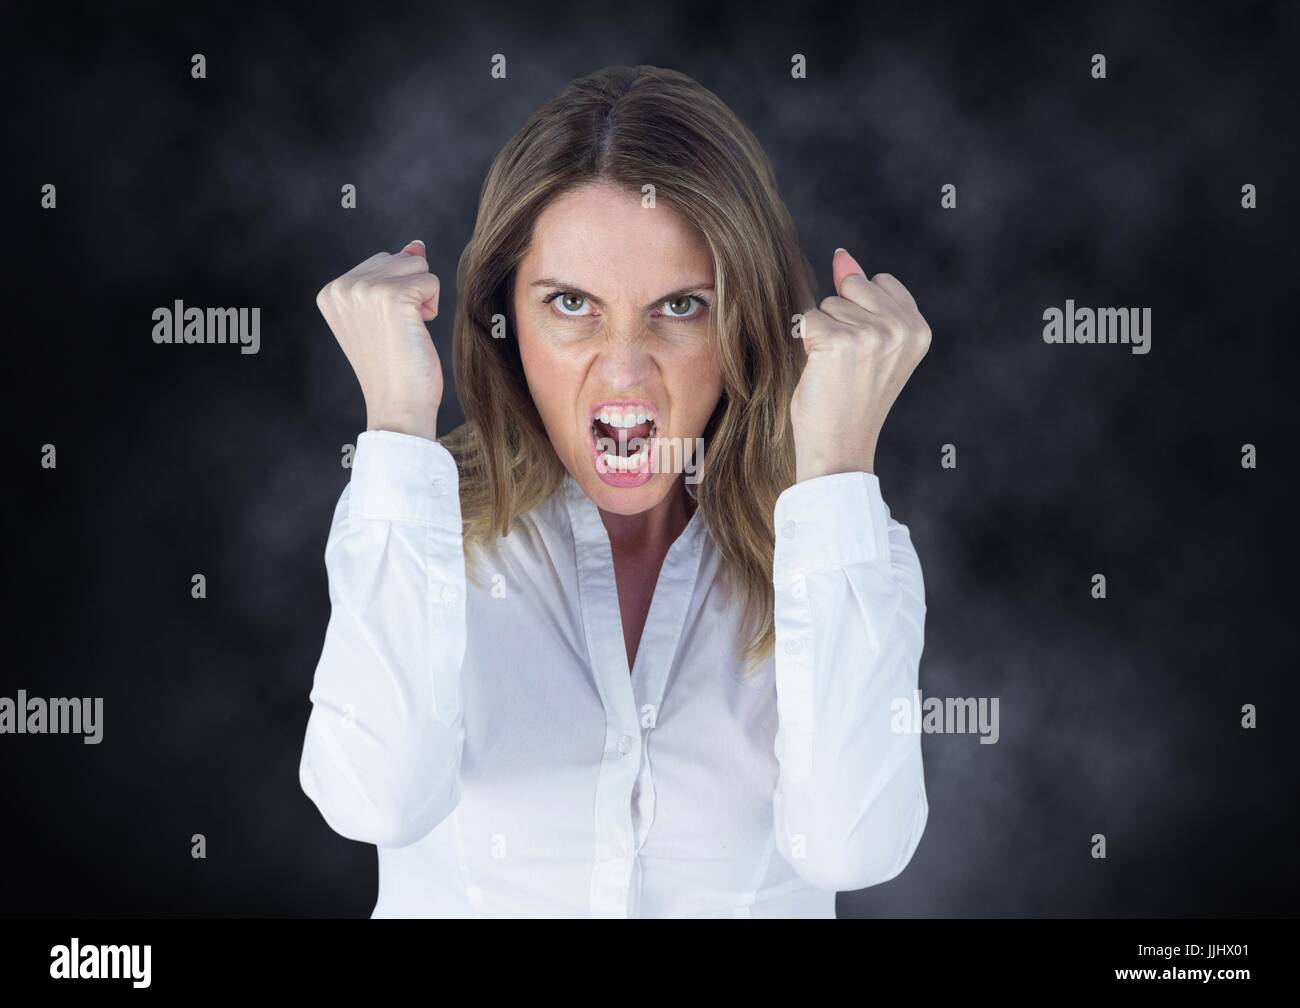 Angry business woman against mist - Stock Image